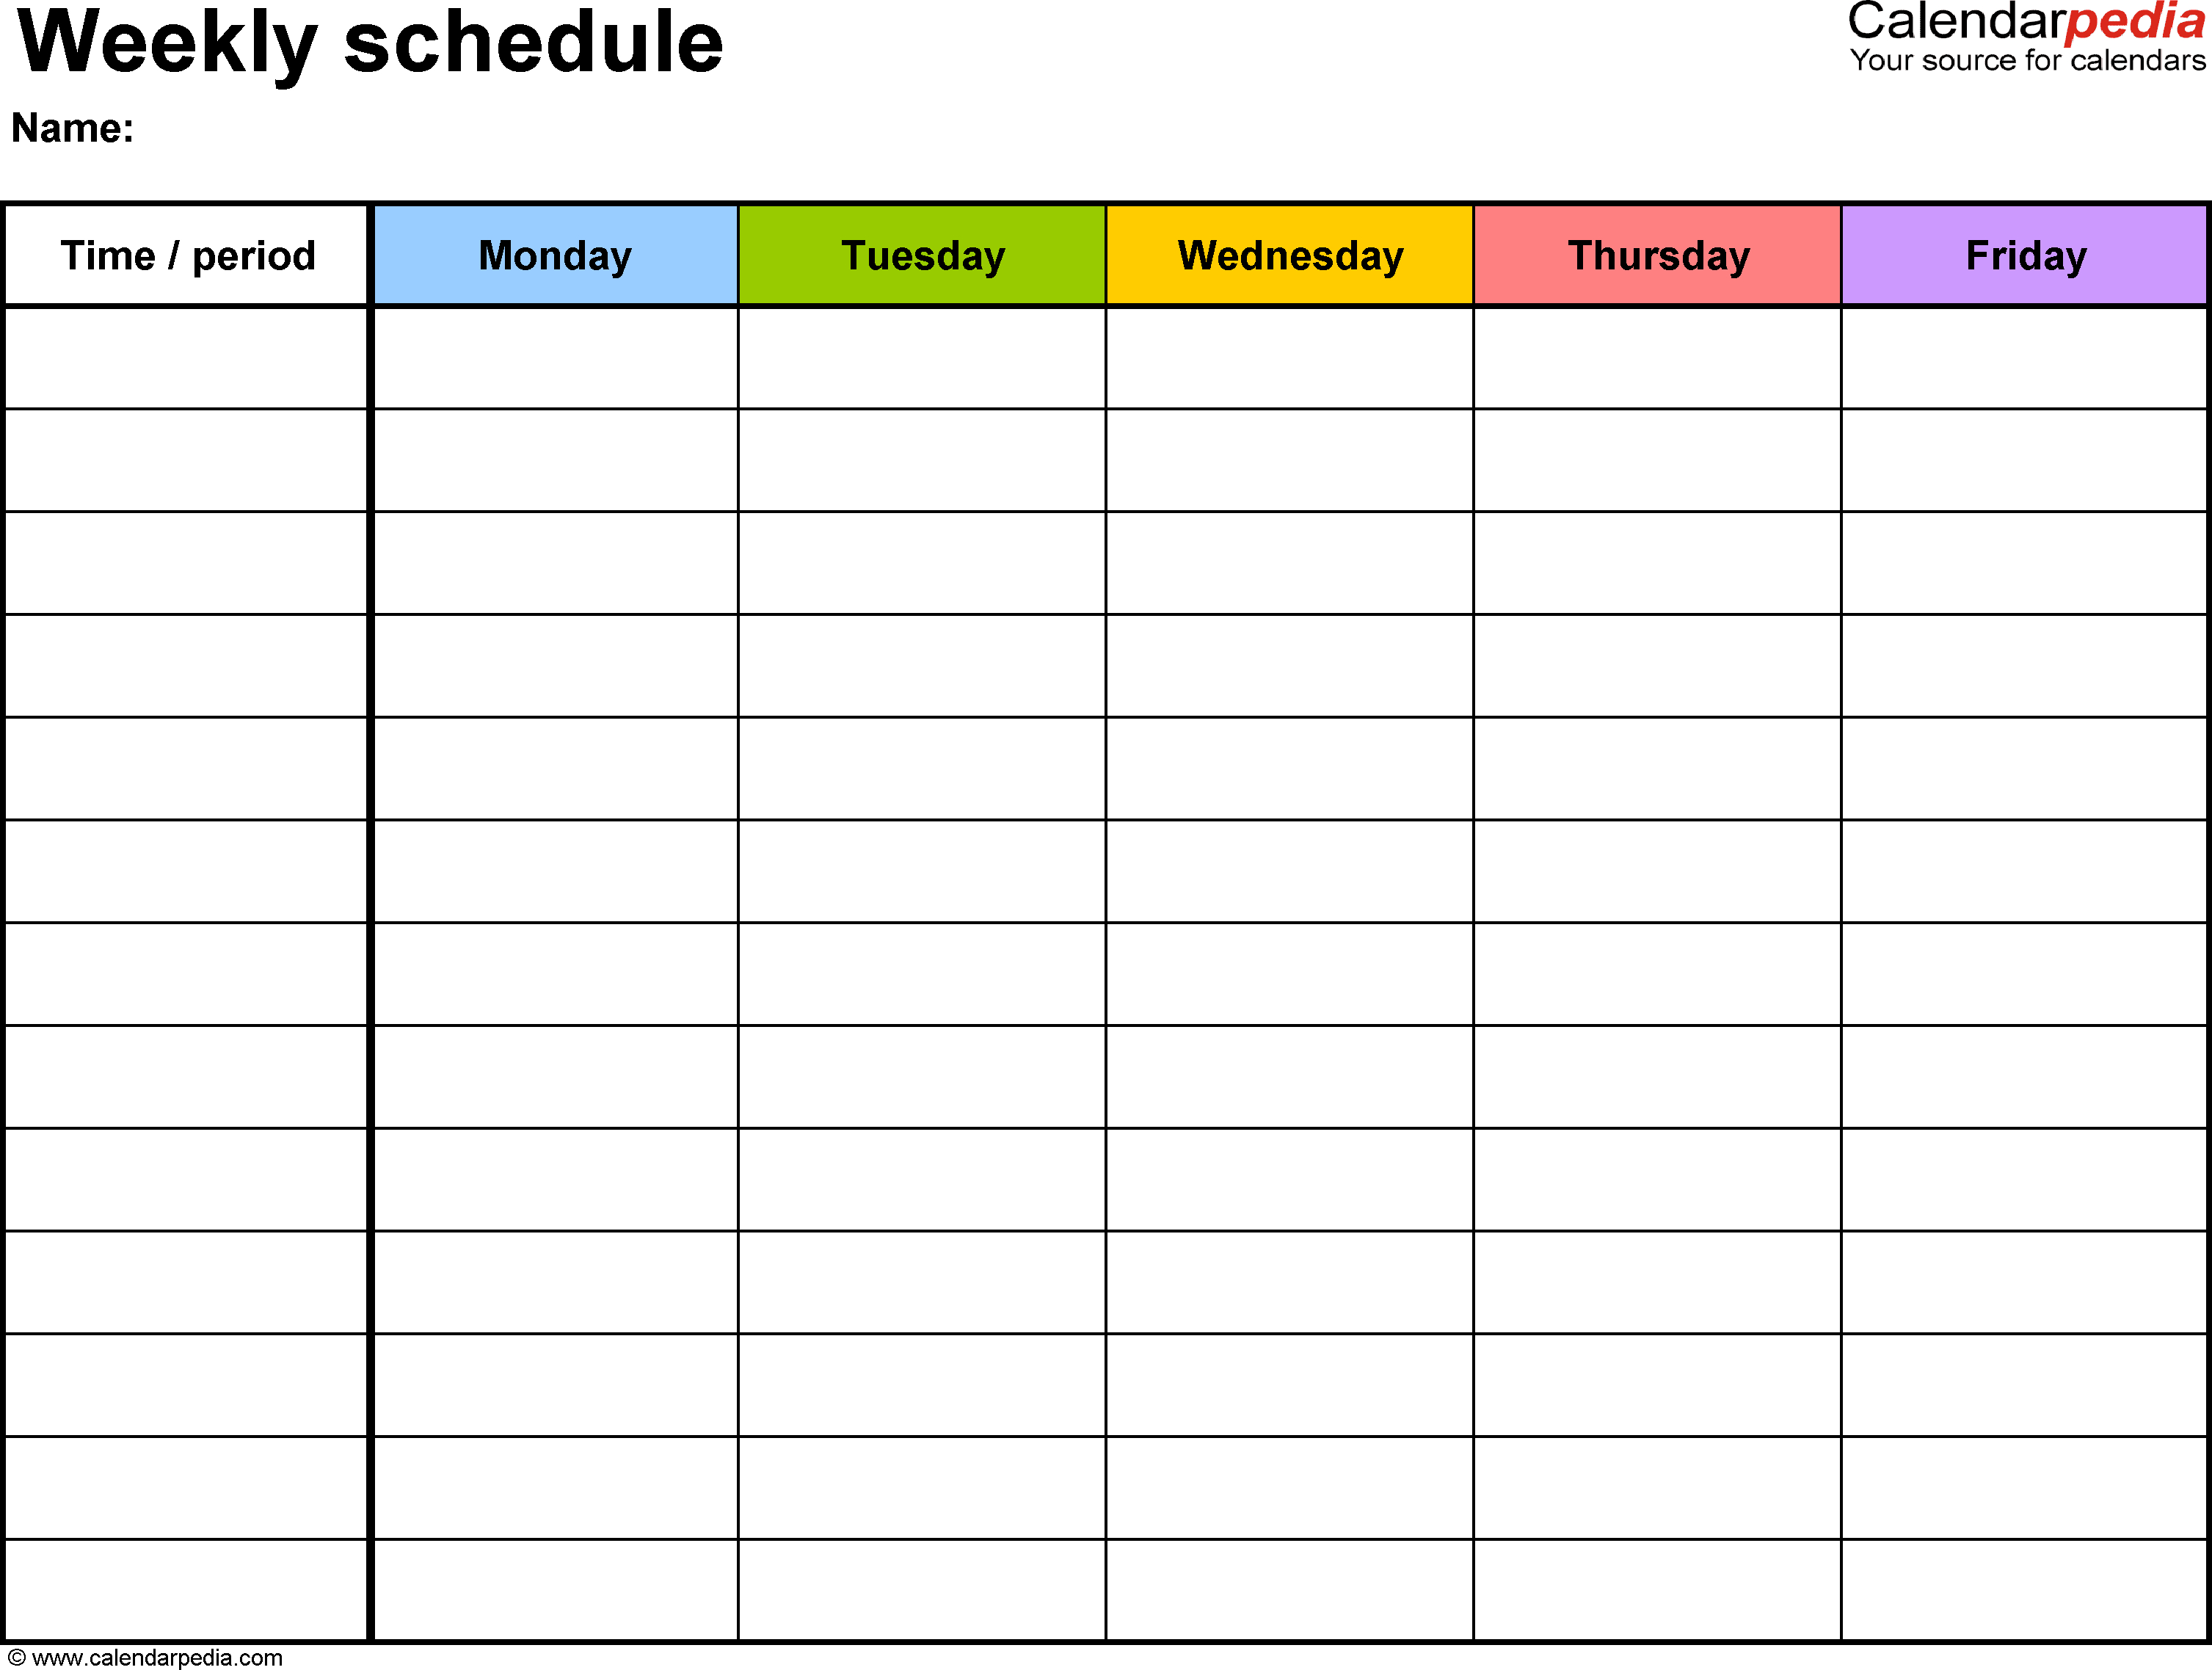 Template Weekly Calendar  Bolan.horizonconsulting.co with Blank Weekly Calender